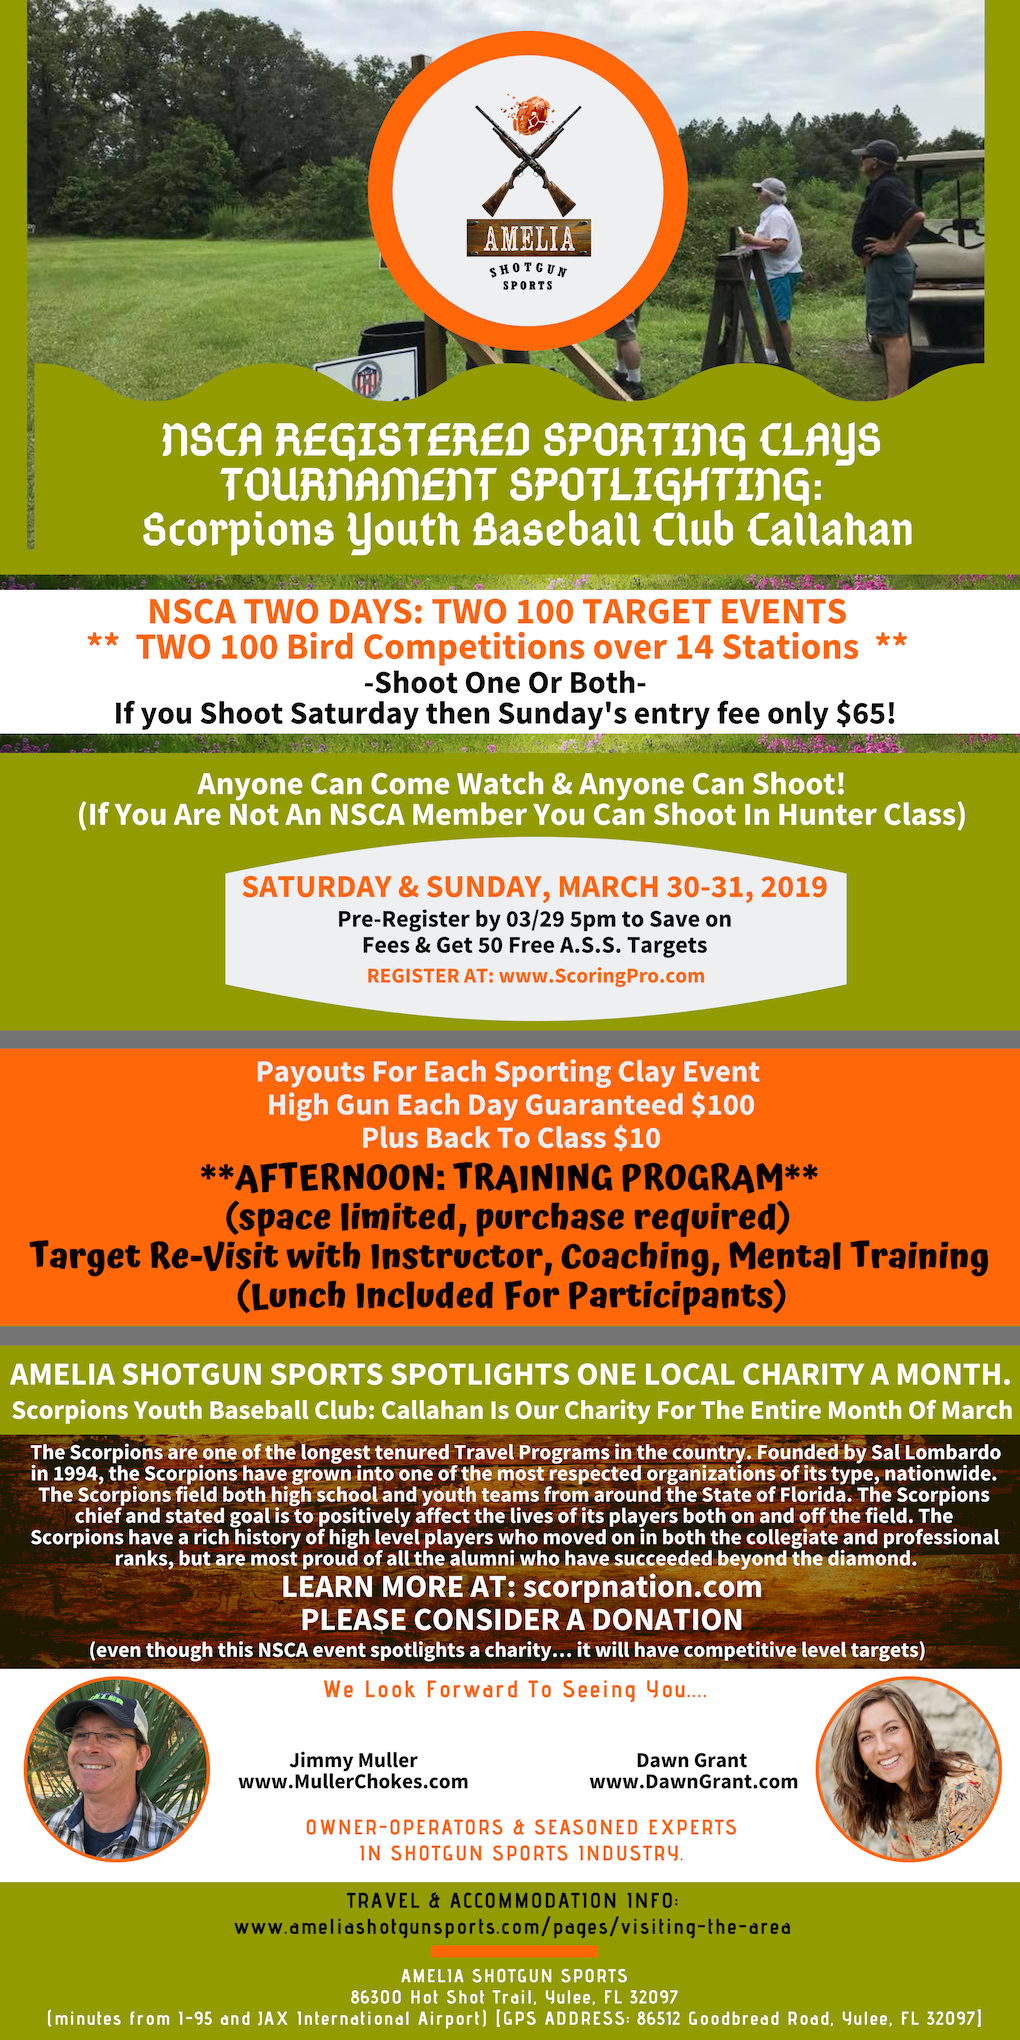 NSCA REGISTERED SPORTING CLAYS TOURNAMENT  SPOTLIGHTING: Scorpions Youth Baseball Club: Callahan